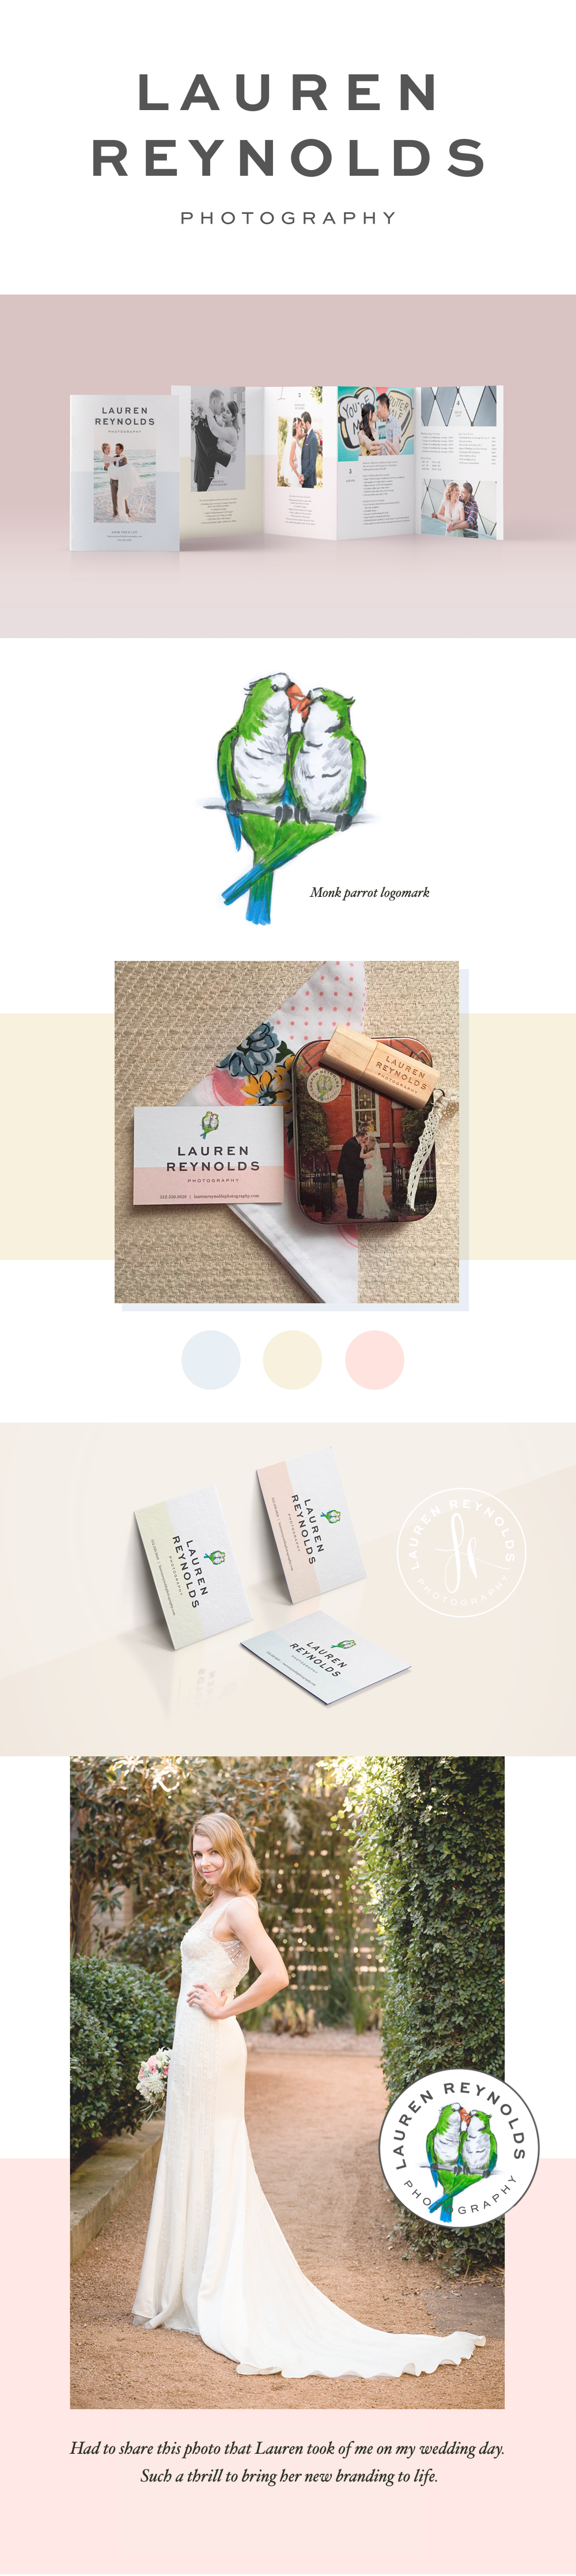 Lauren Reynolds Photography Branding by Five and Four